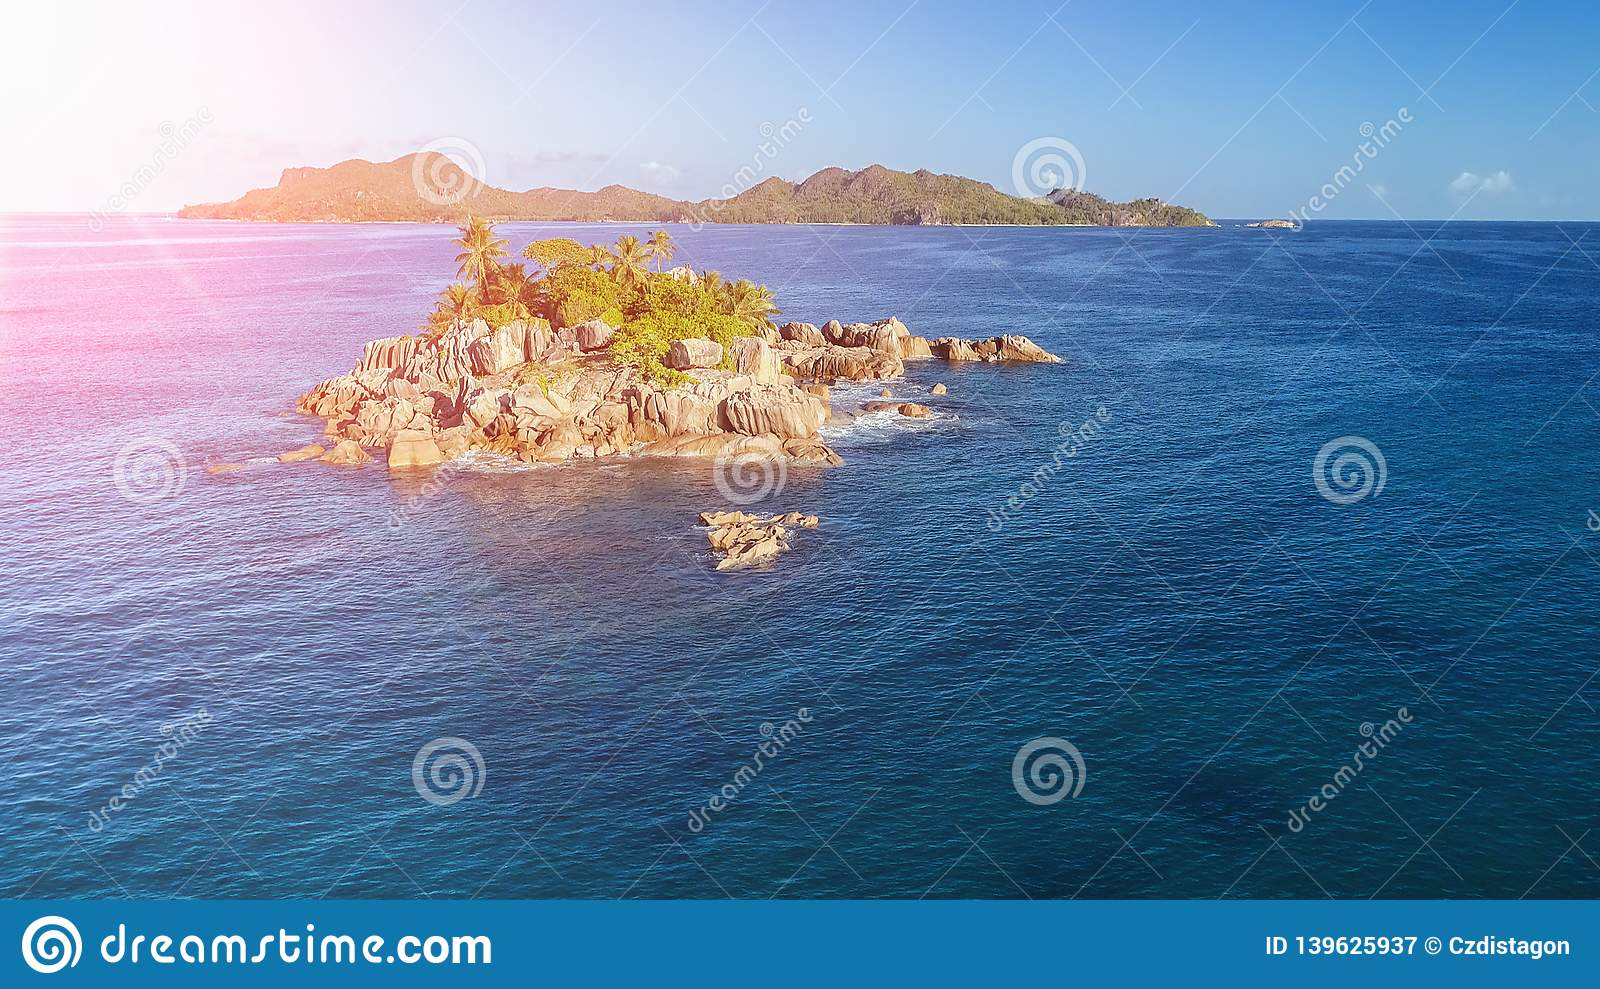 Sea aerial view, Top view,amazing nature background.The color of the water and beautifully bright. Azure beach with rocky mountain